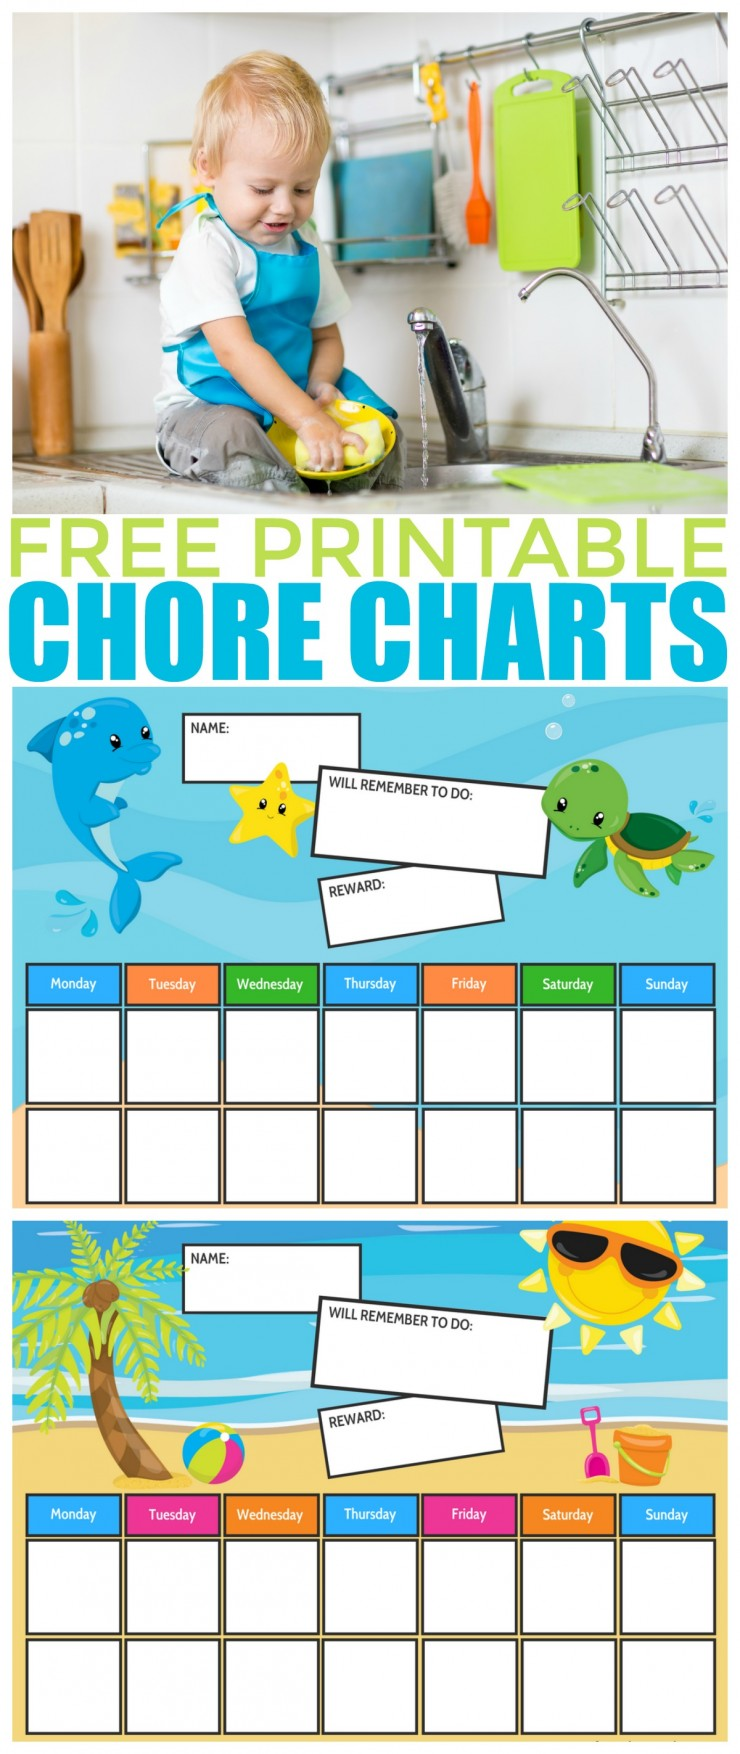 These Ocean & Beach Themed Free Printable Chore Charts are so cute don't you think? They are a great way to encourage your children to track and complete chores all summer long!